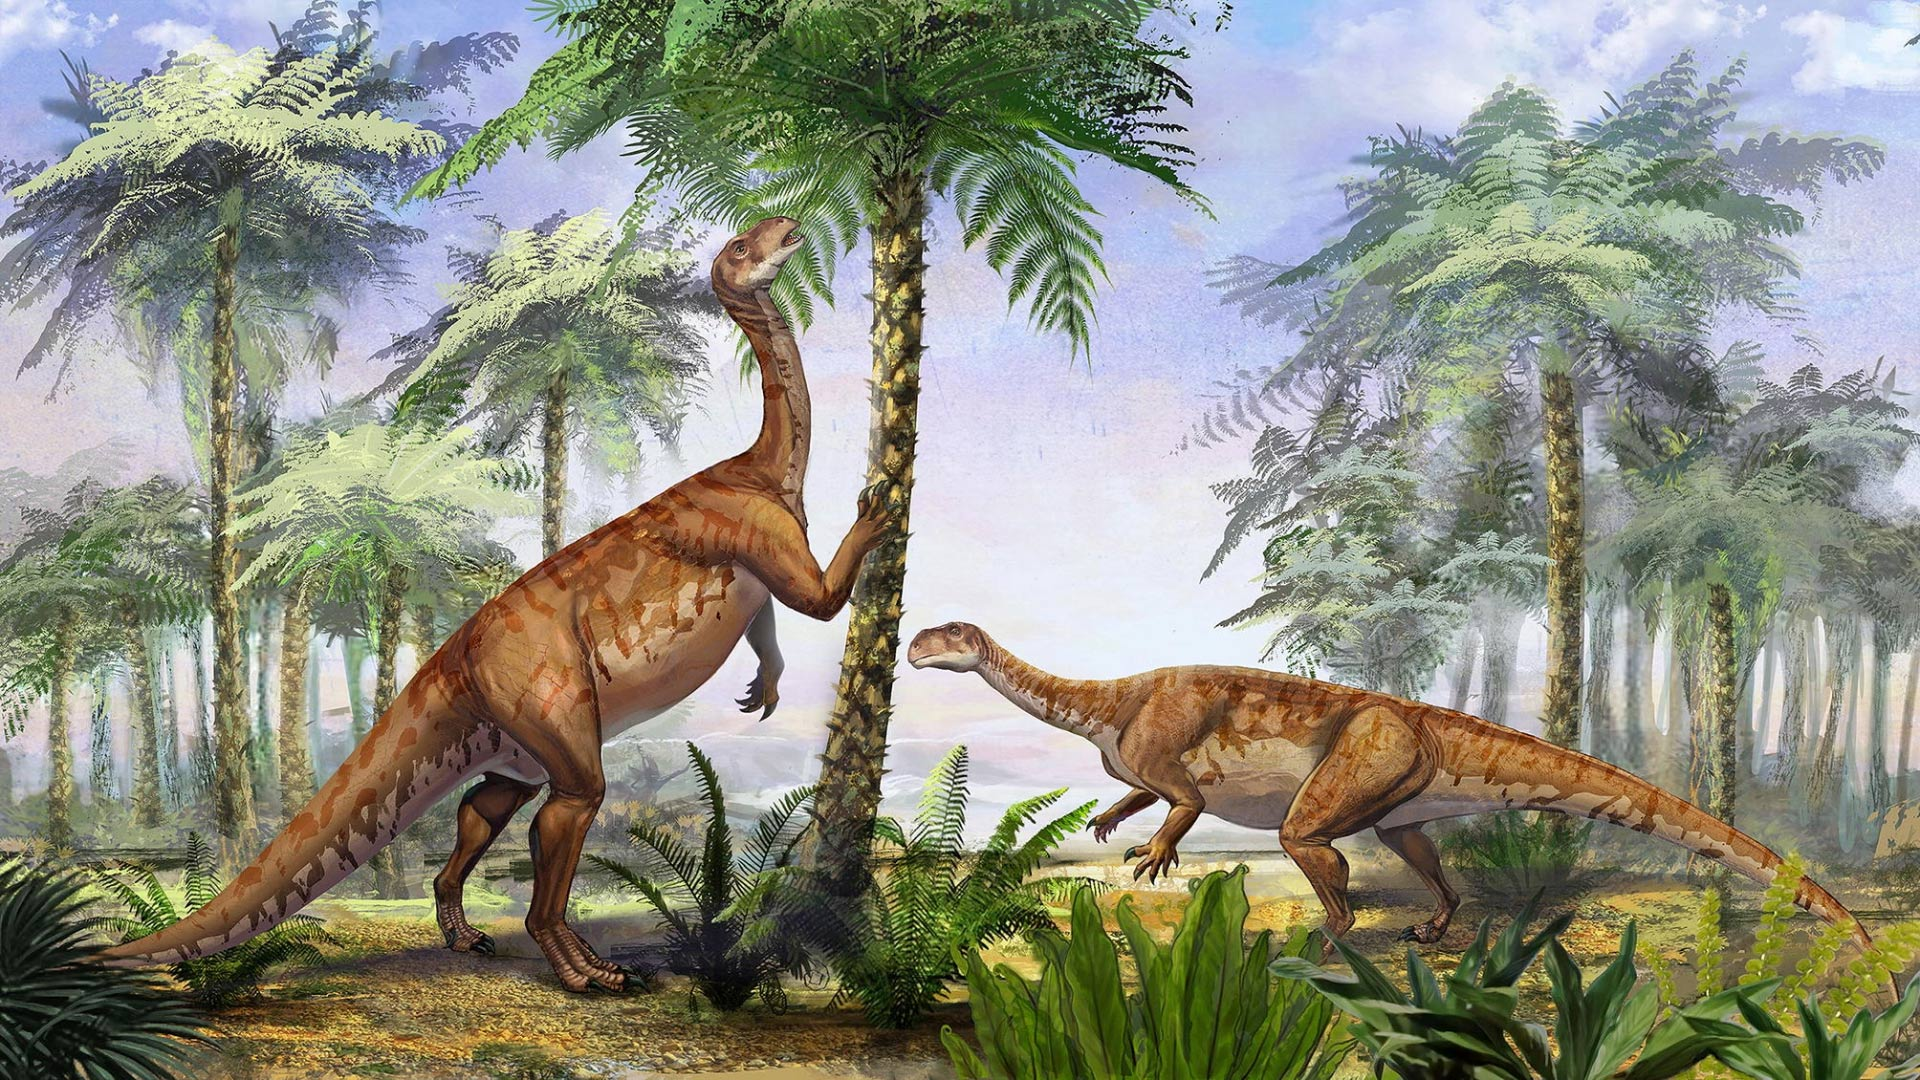 What-Does-Dinosaurs-Eat-Facts-About-Dinosaur-Diet-Two-Irisosaurus